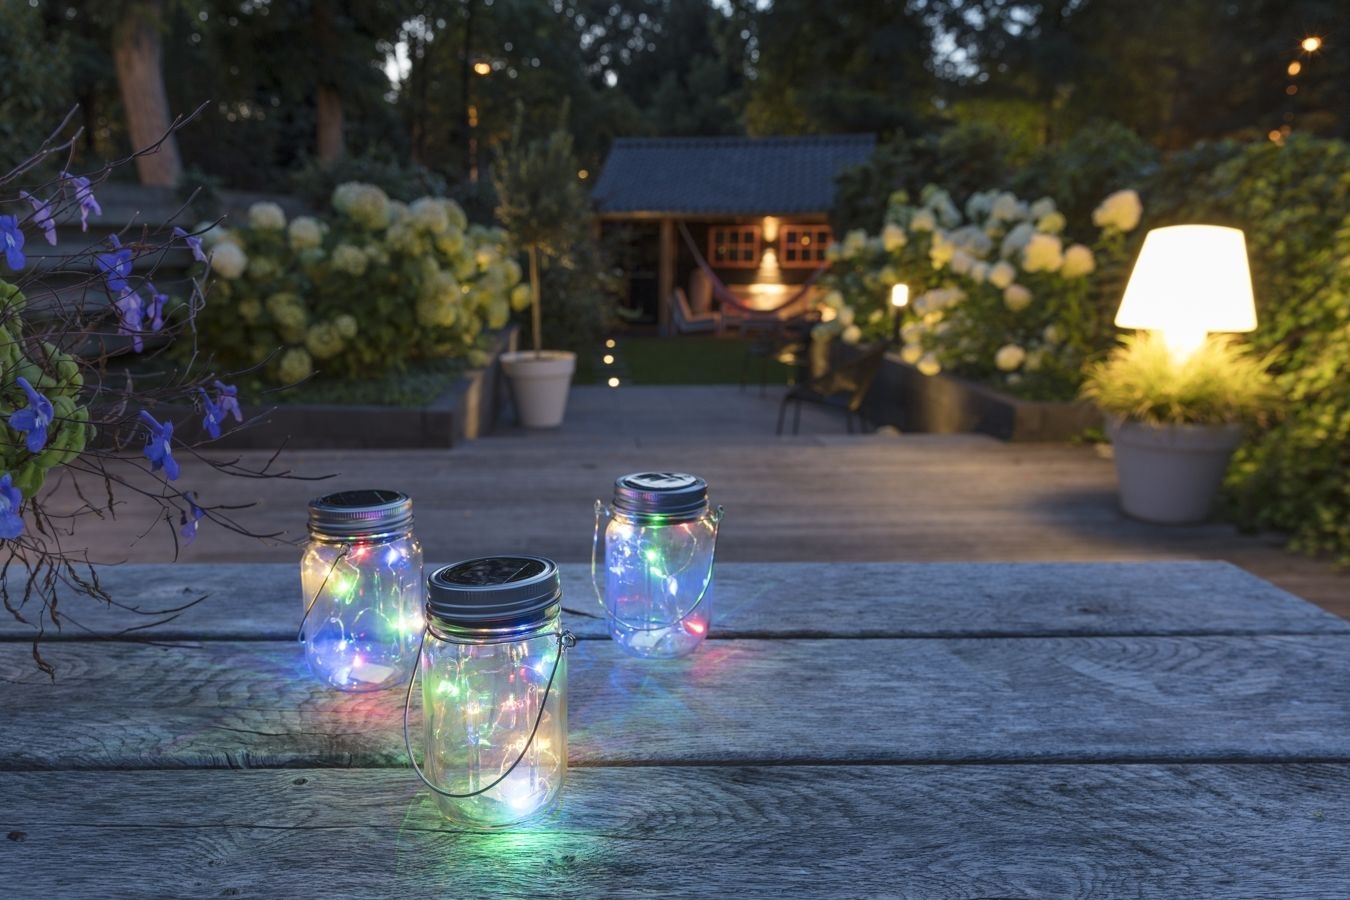 Ouderwetse Tuin Verlichting Led Solar Lamp In Pot Detroit Yrgb Led Lovers